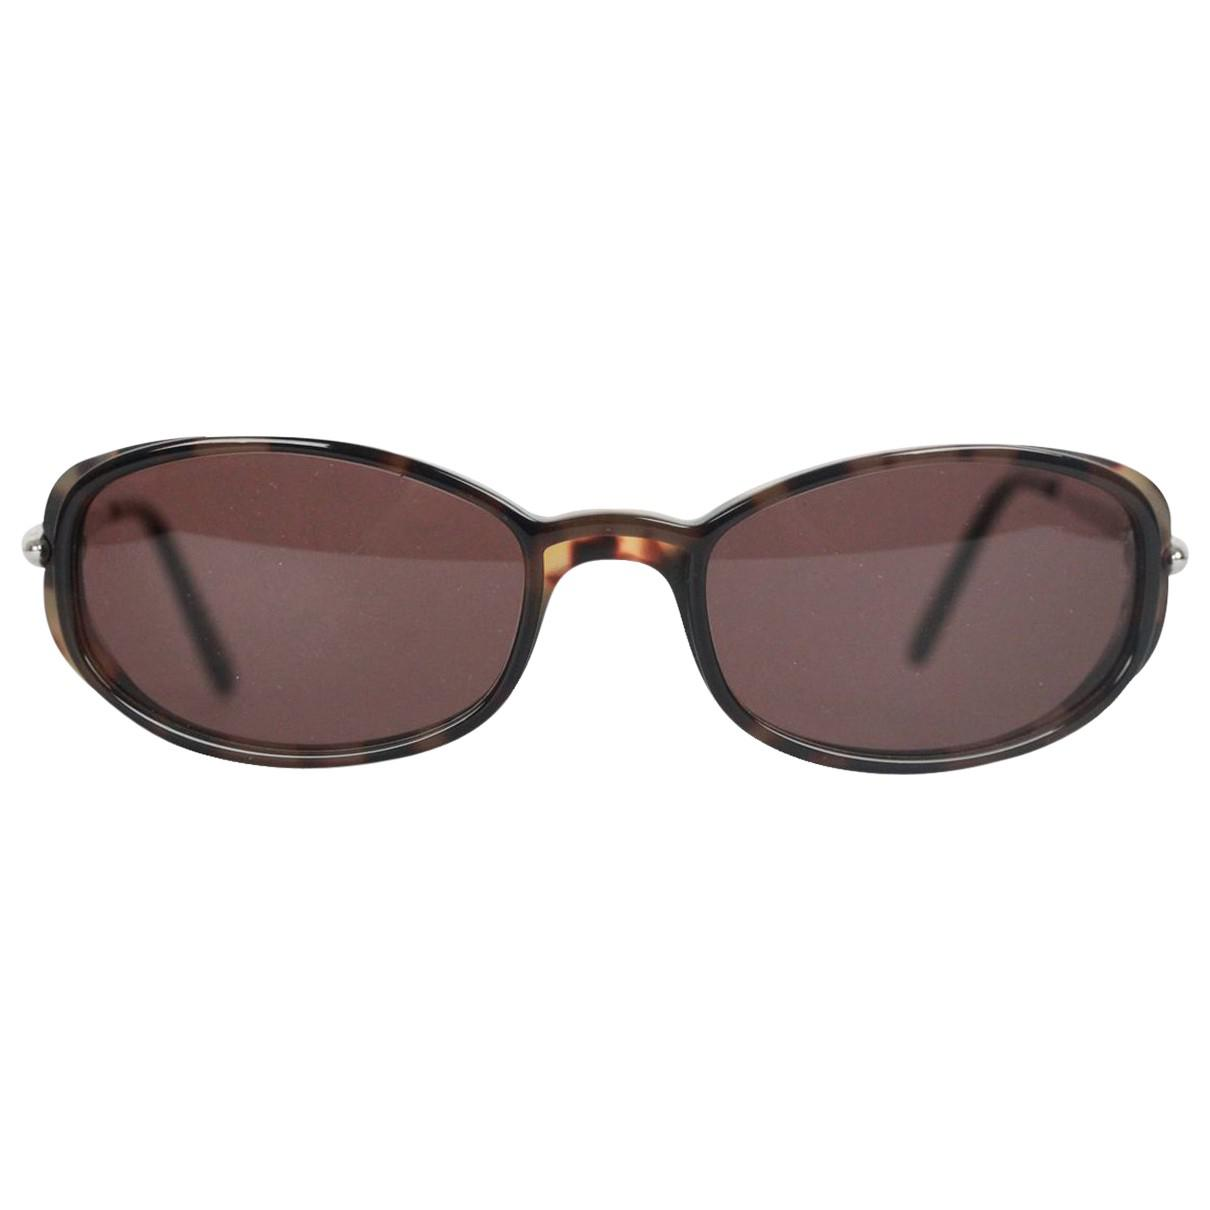 c048501c2a1 Lyst - Cartier Sunglasses in Brown